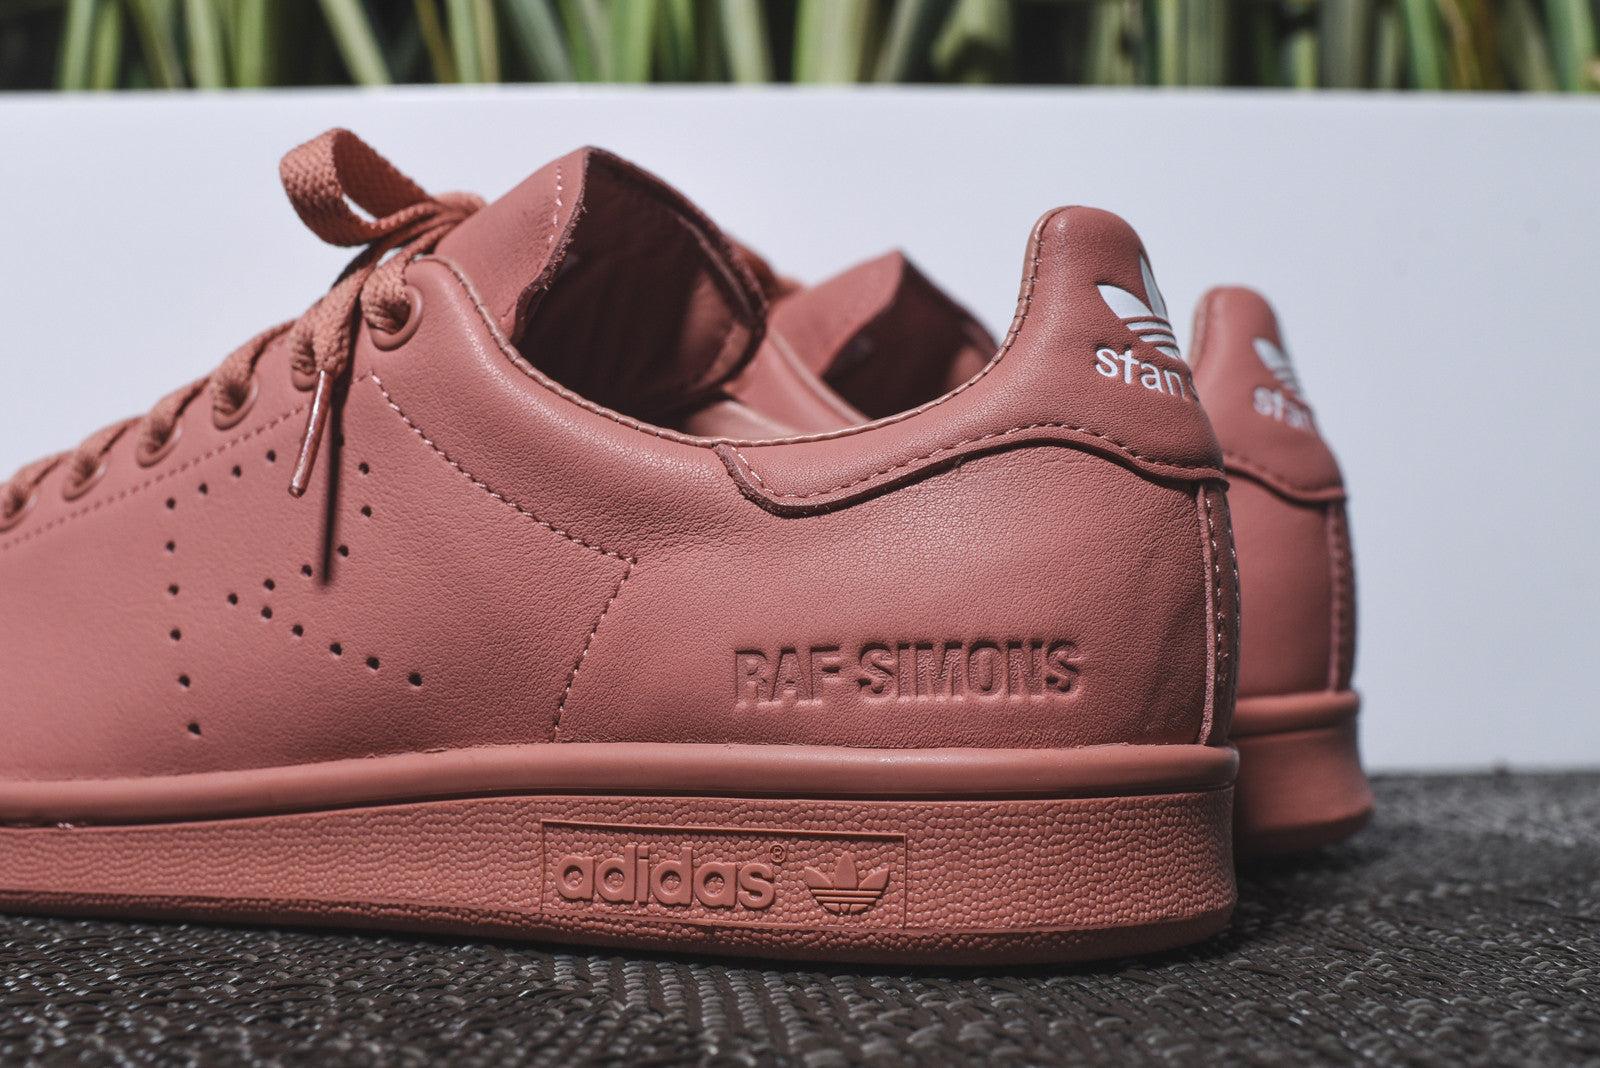 adidas stan smith rosa raf simons